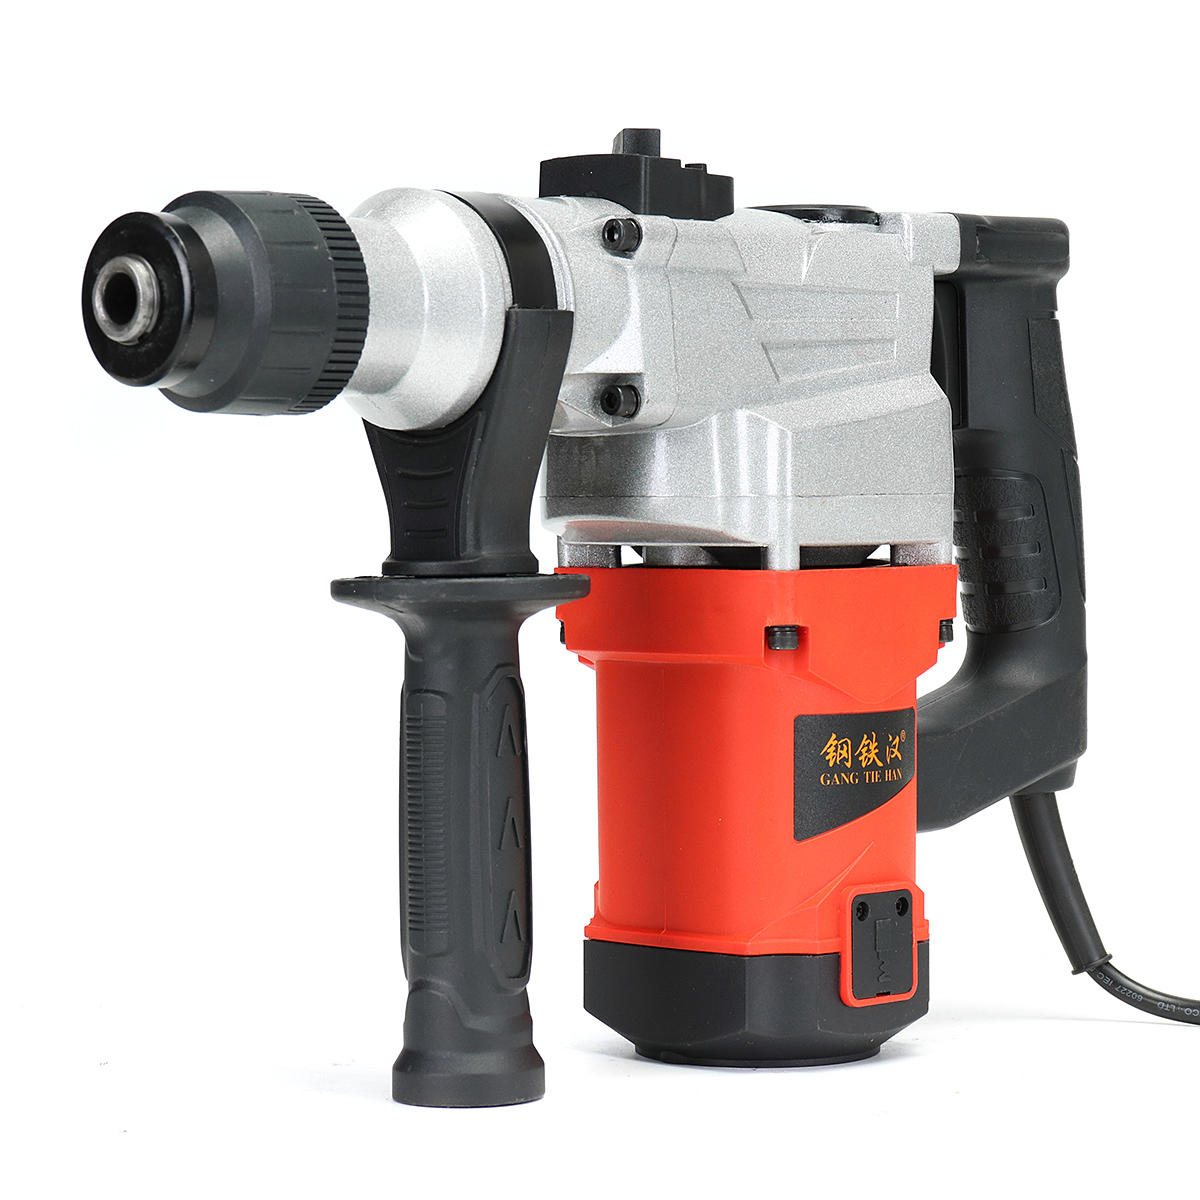 220V 26A / 30A 4900RPM Power Hammer Impact Drill Electric Hammers Power Drill